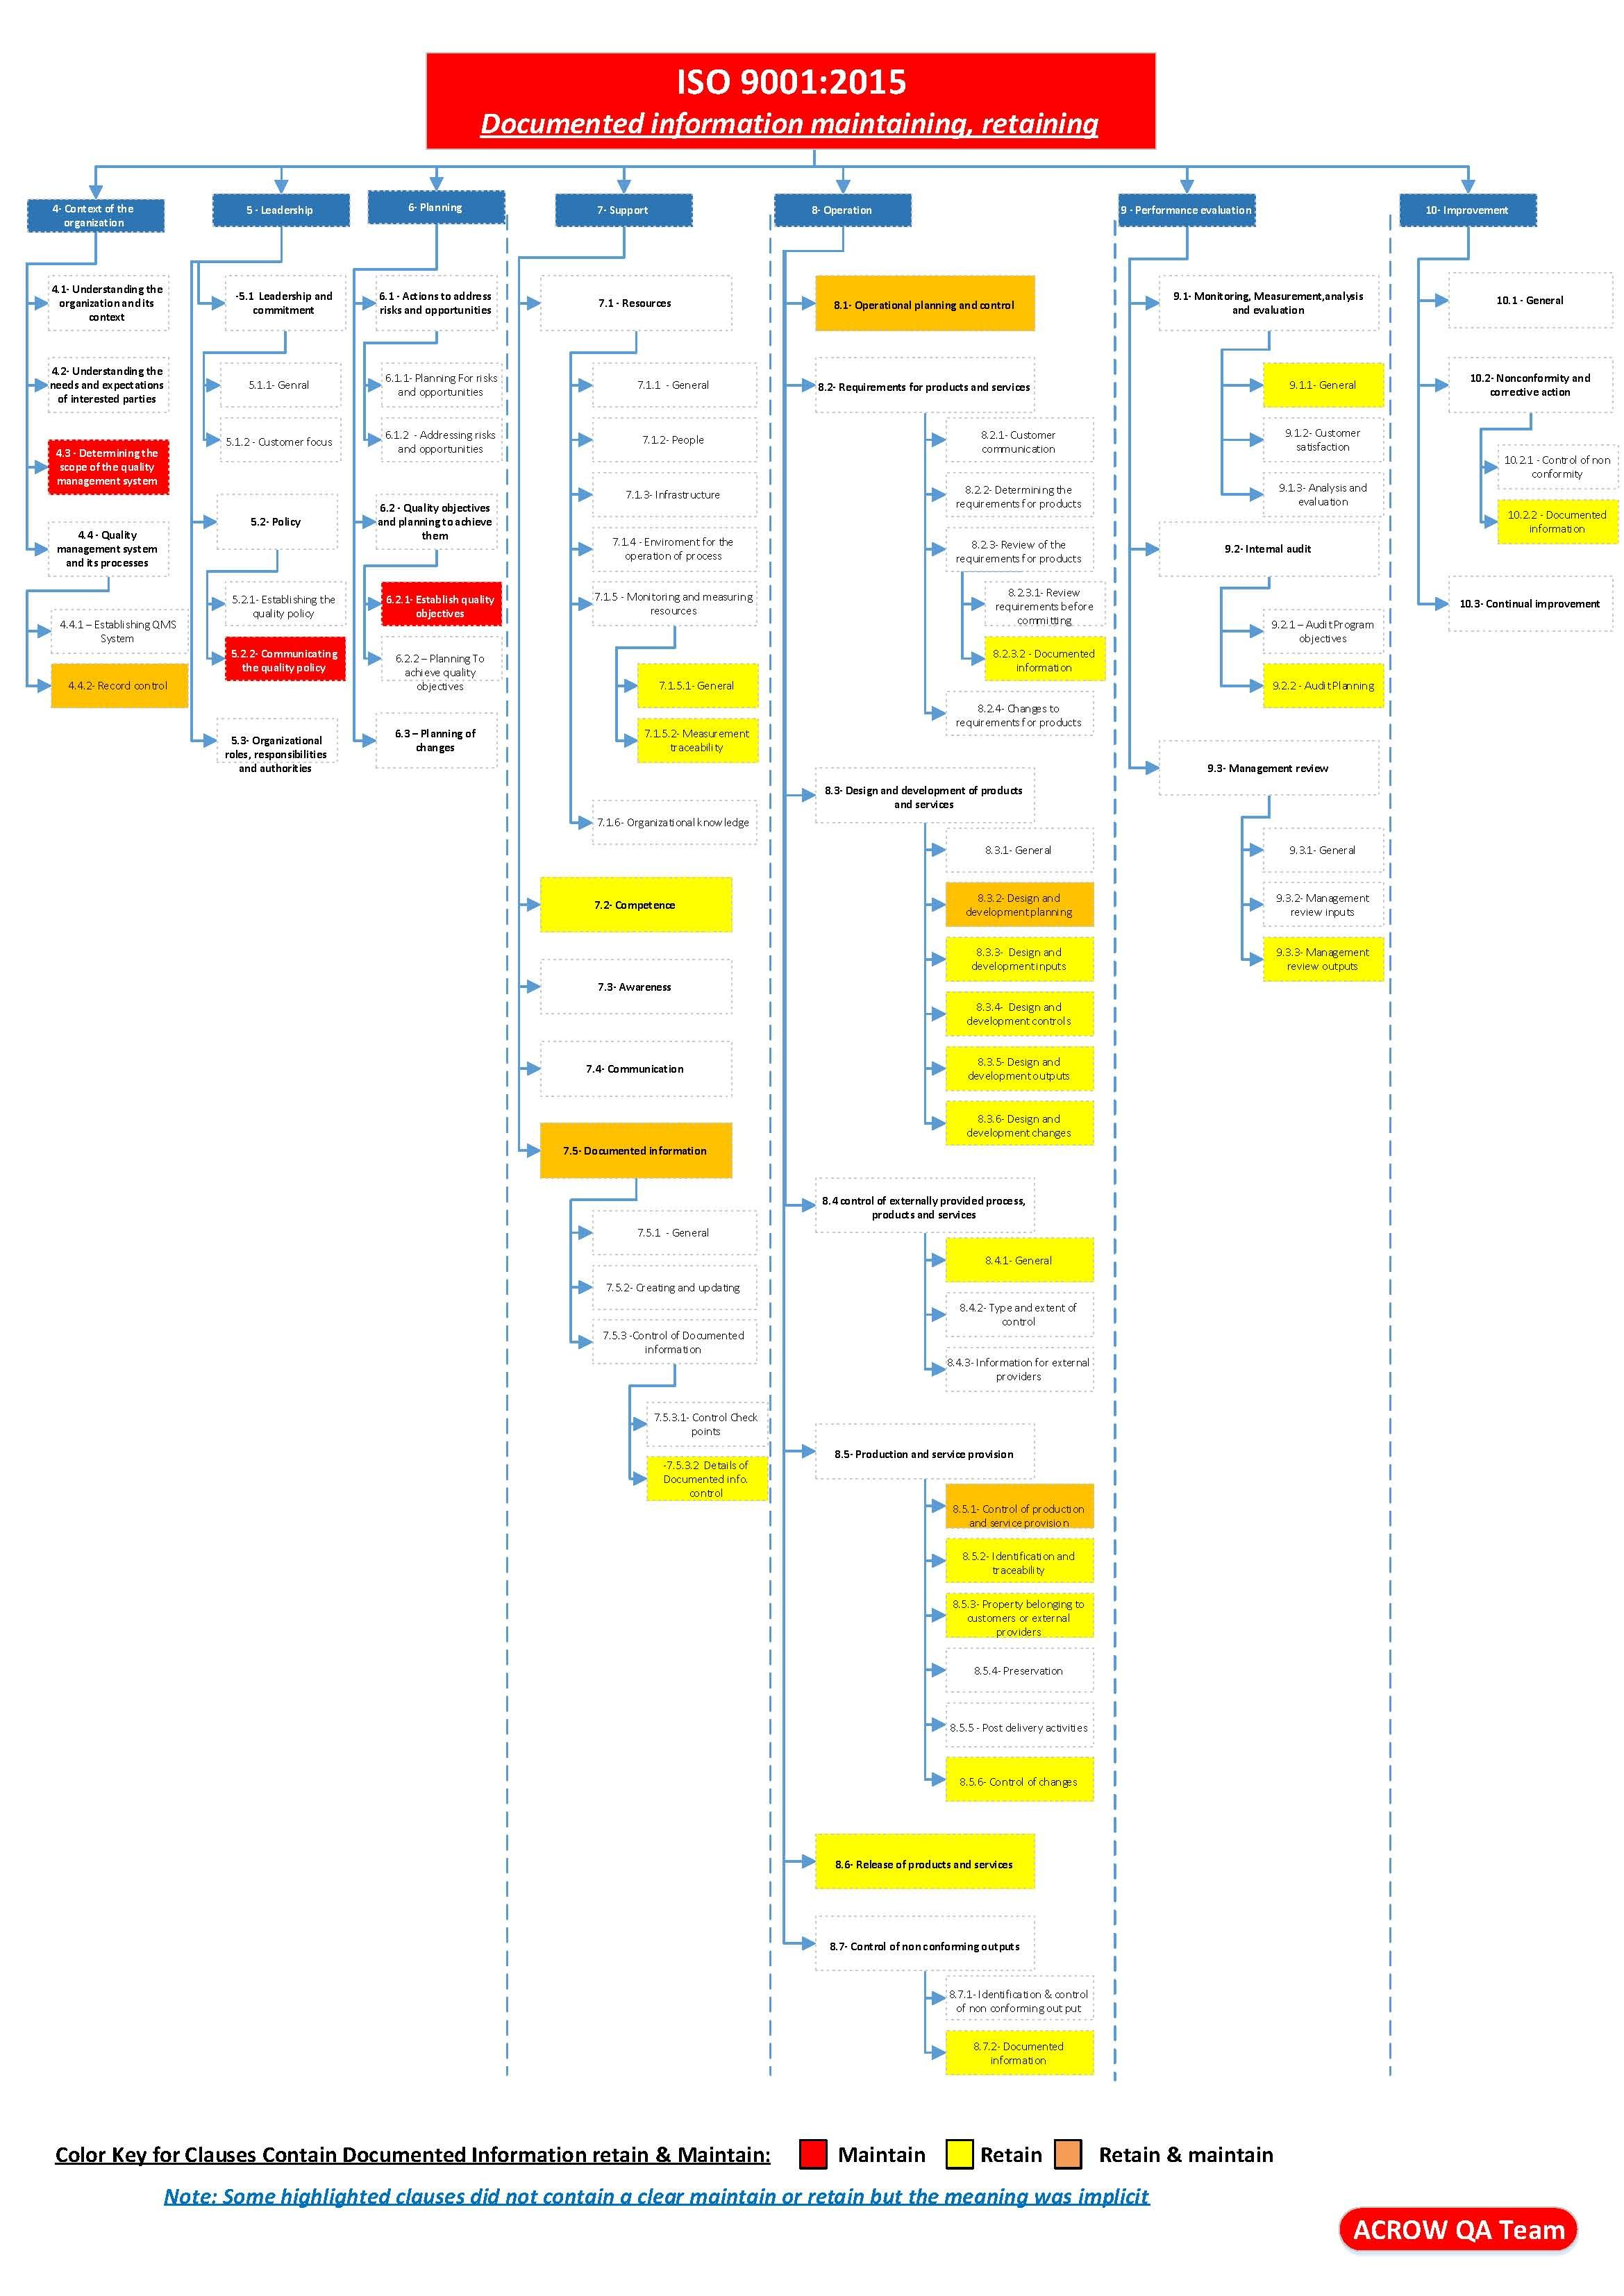 iso process audit turtle diagram omron ly2 relay wiring 9001 2015 documented information maintain retain